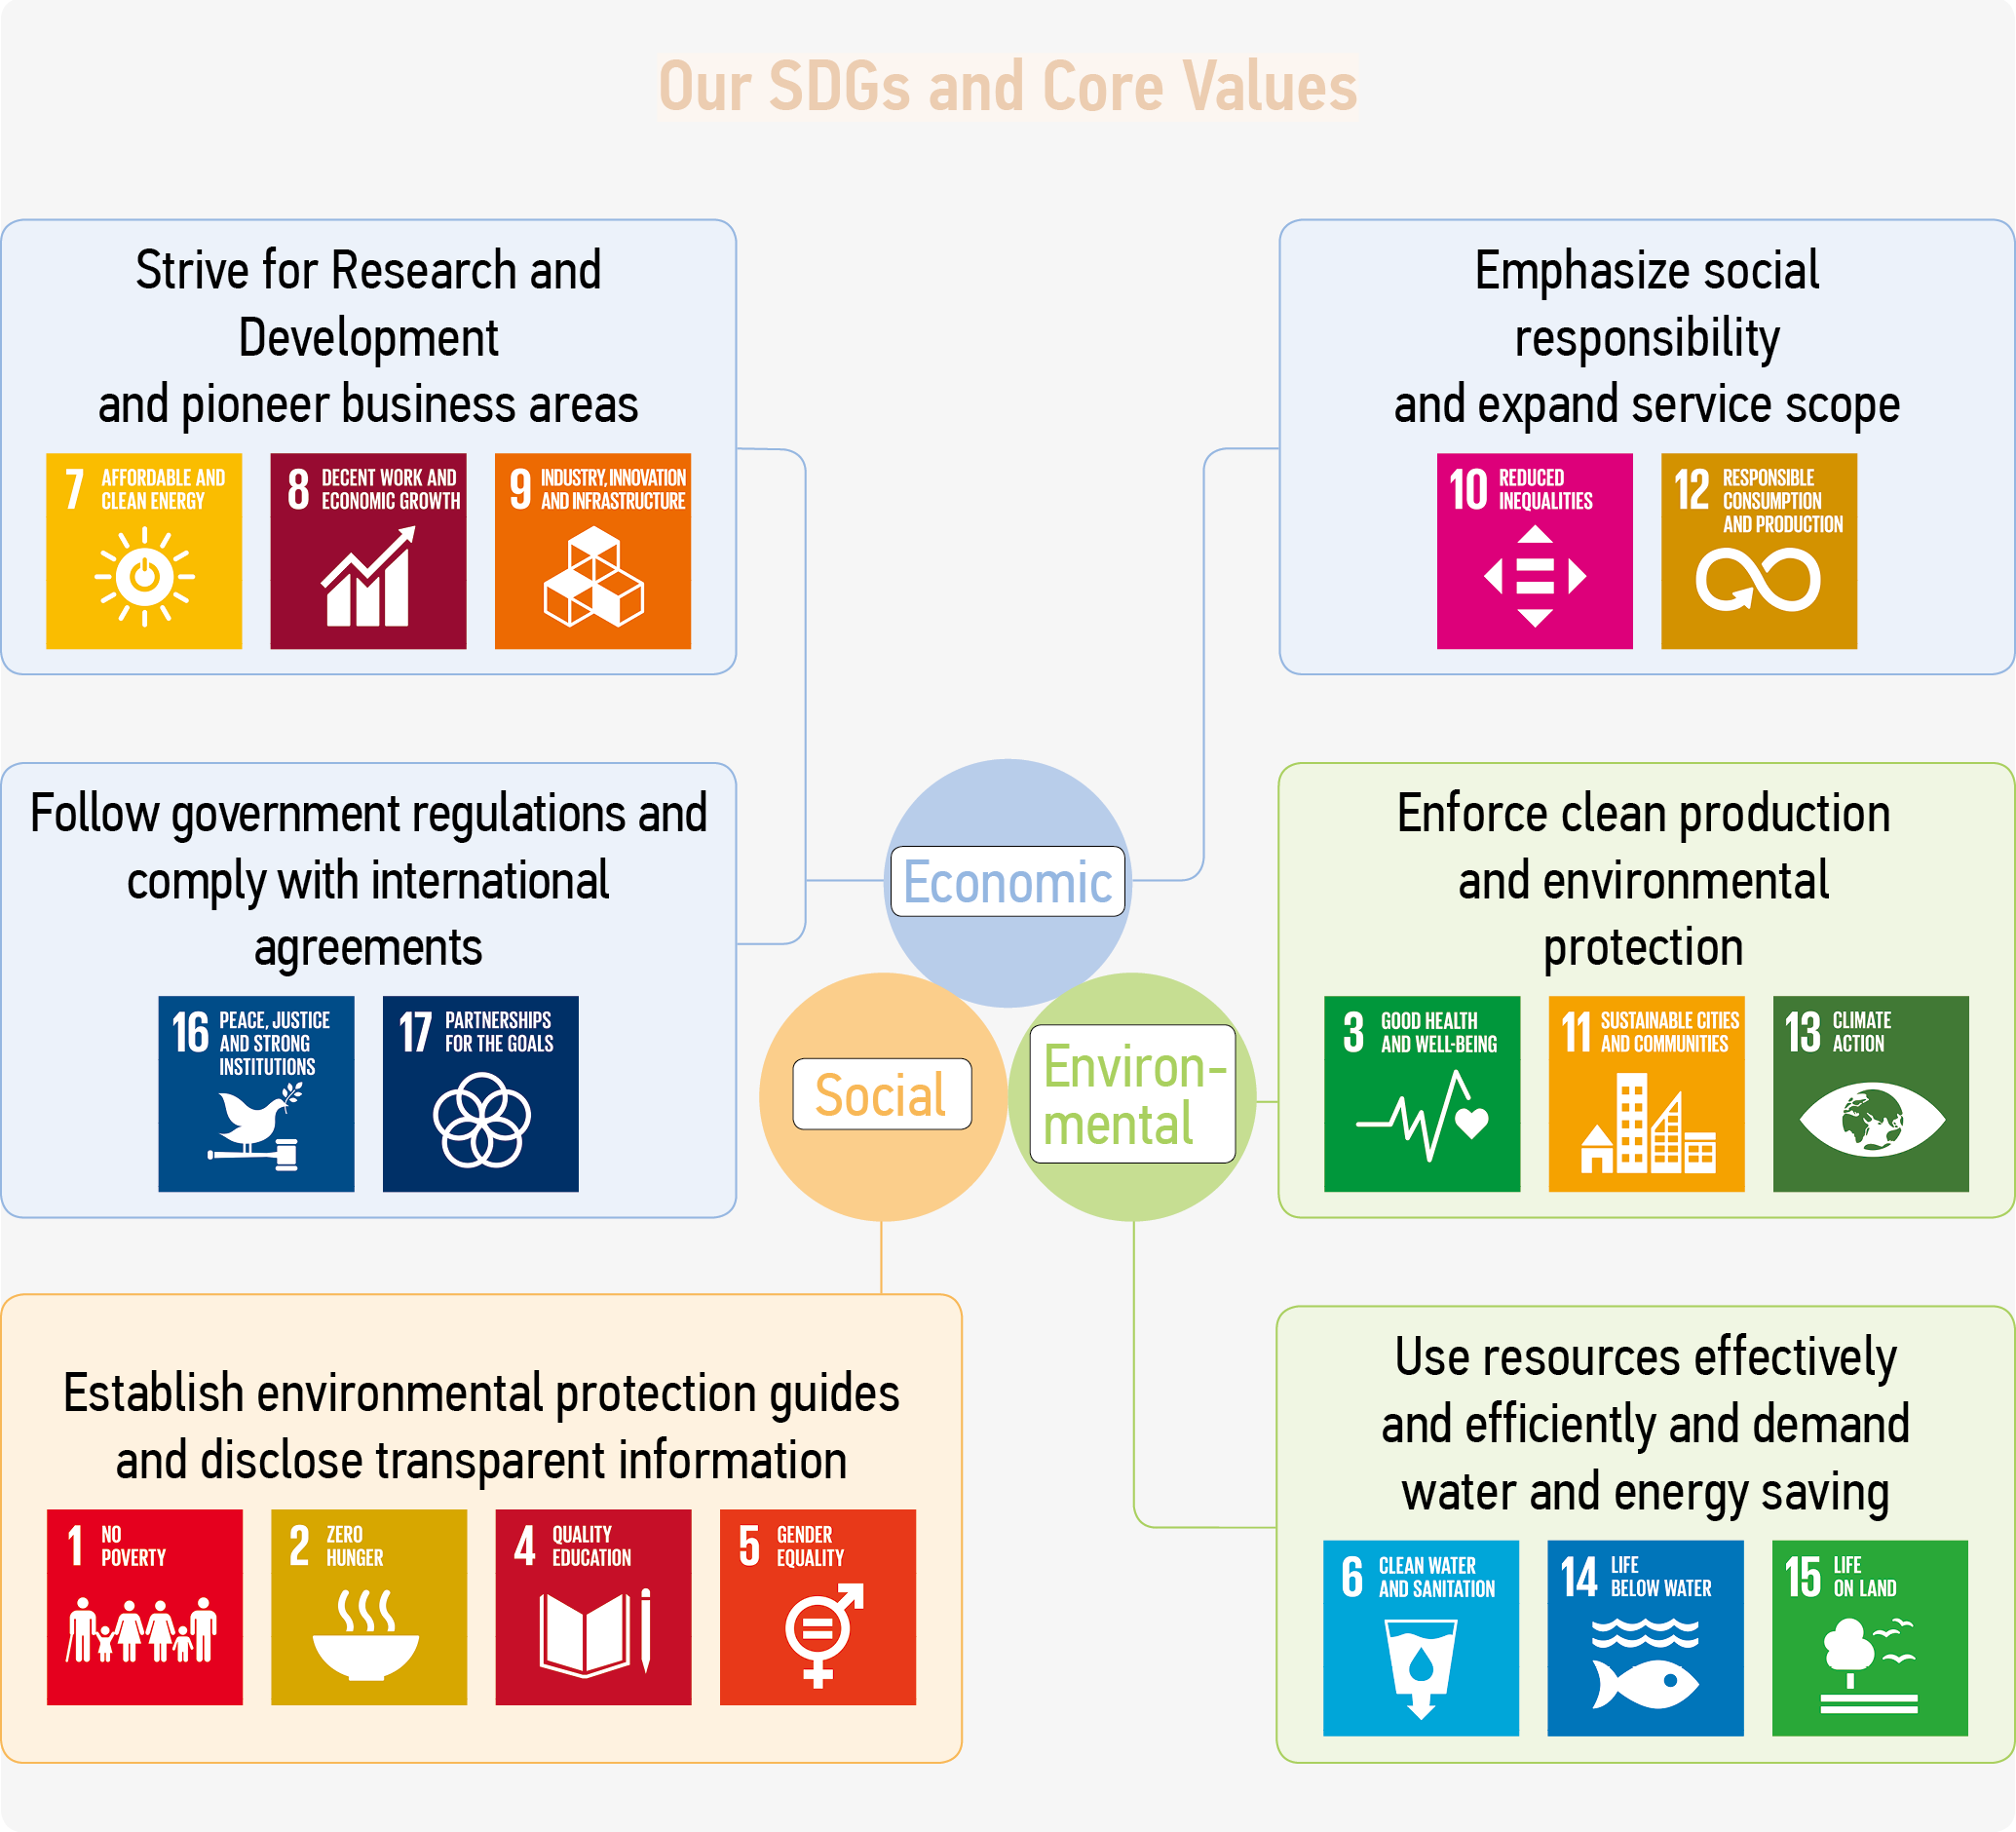 Our SDGs and Core Values